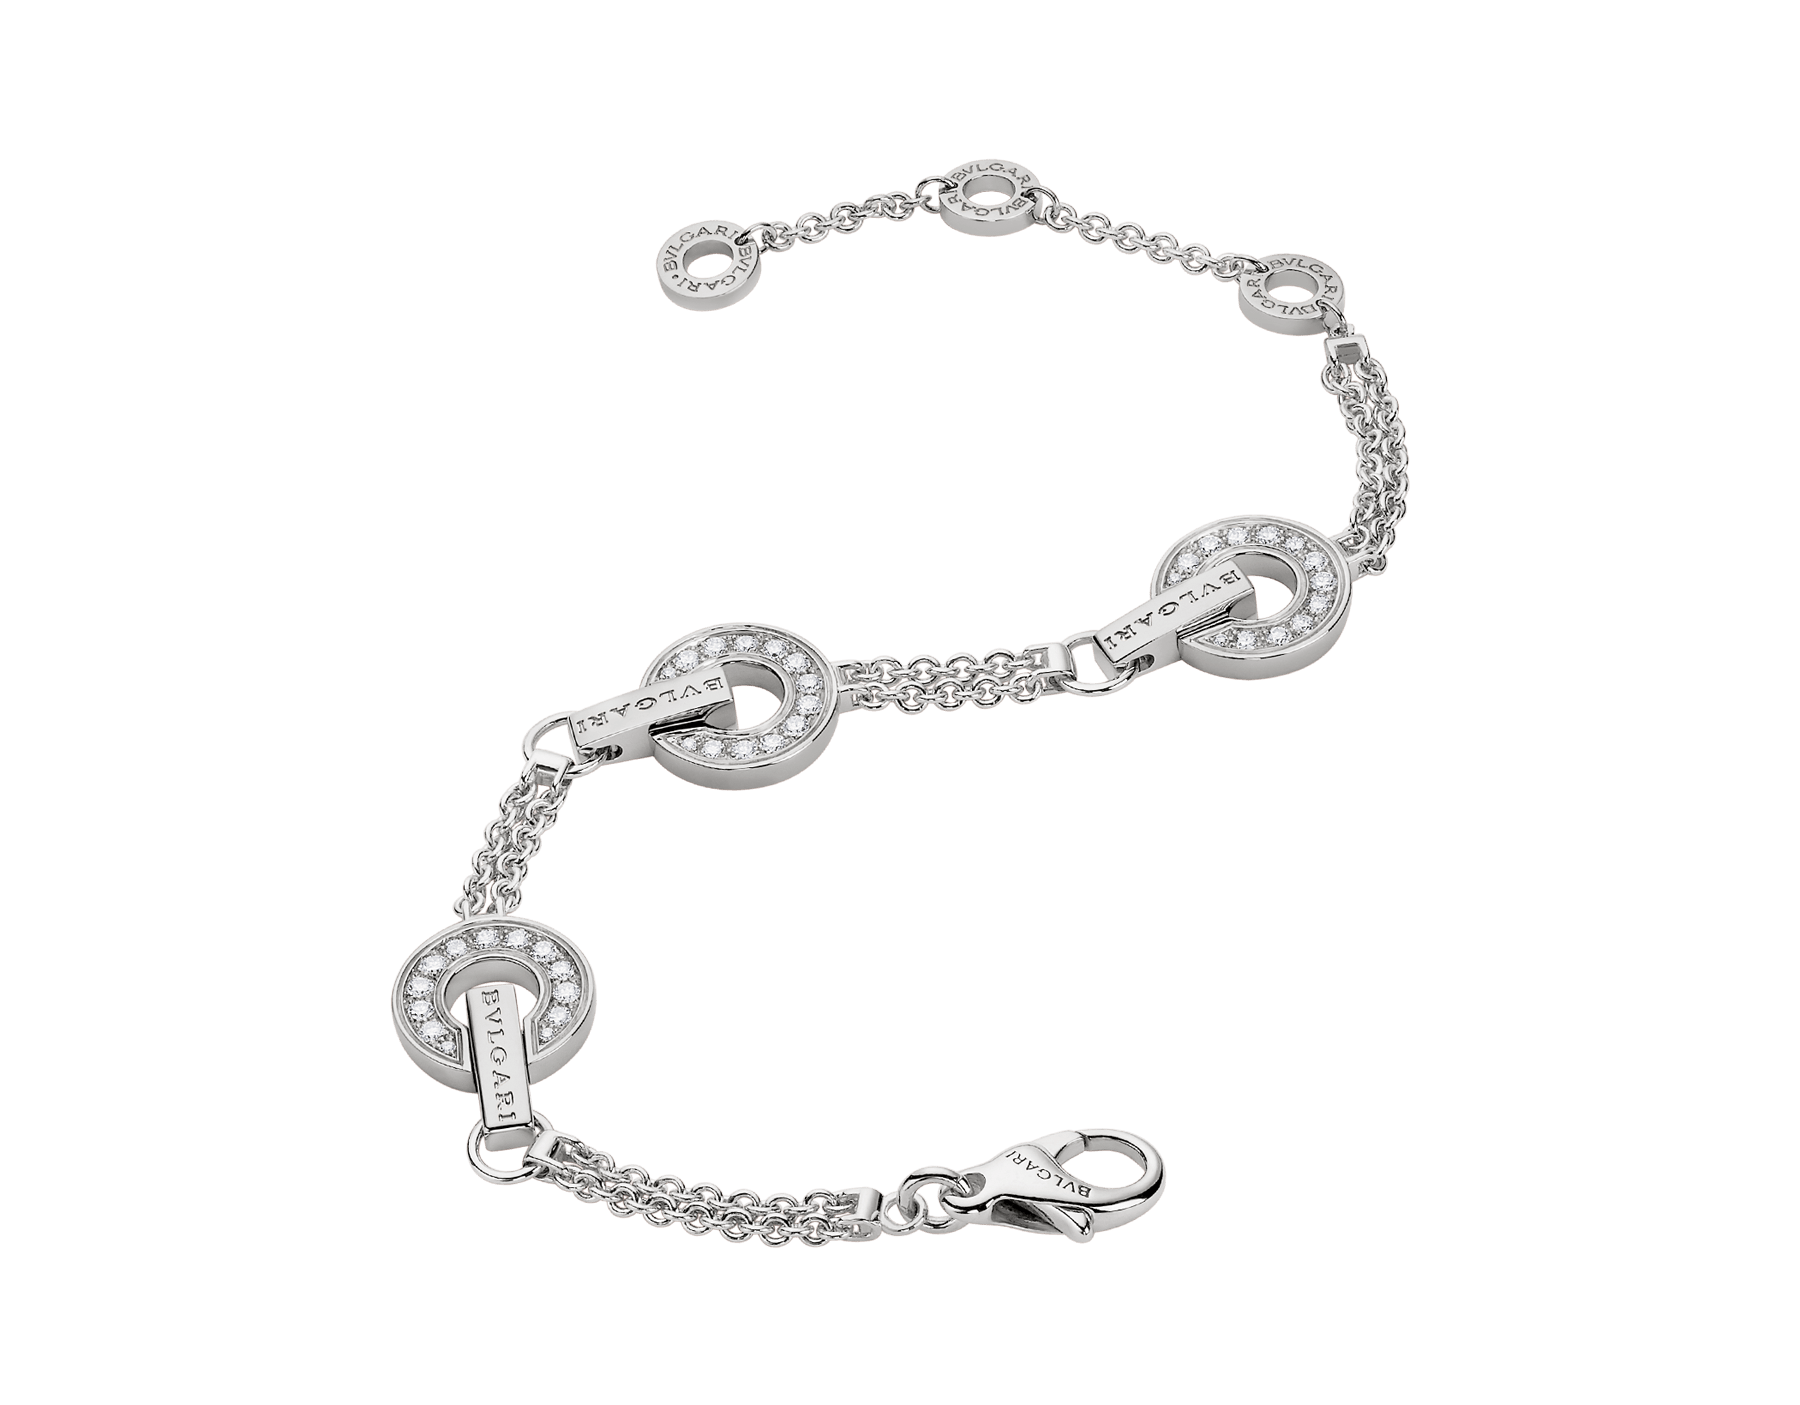 BVLGARI BVLGARI Openwork 18 kt white gold necklace set with full pavé diamonds on the circular elements BR859065 image 2